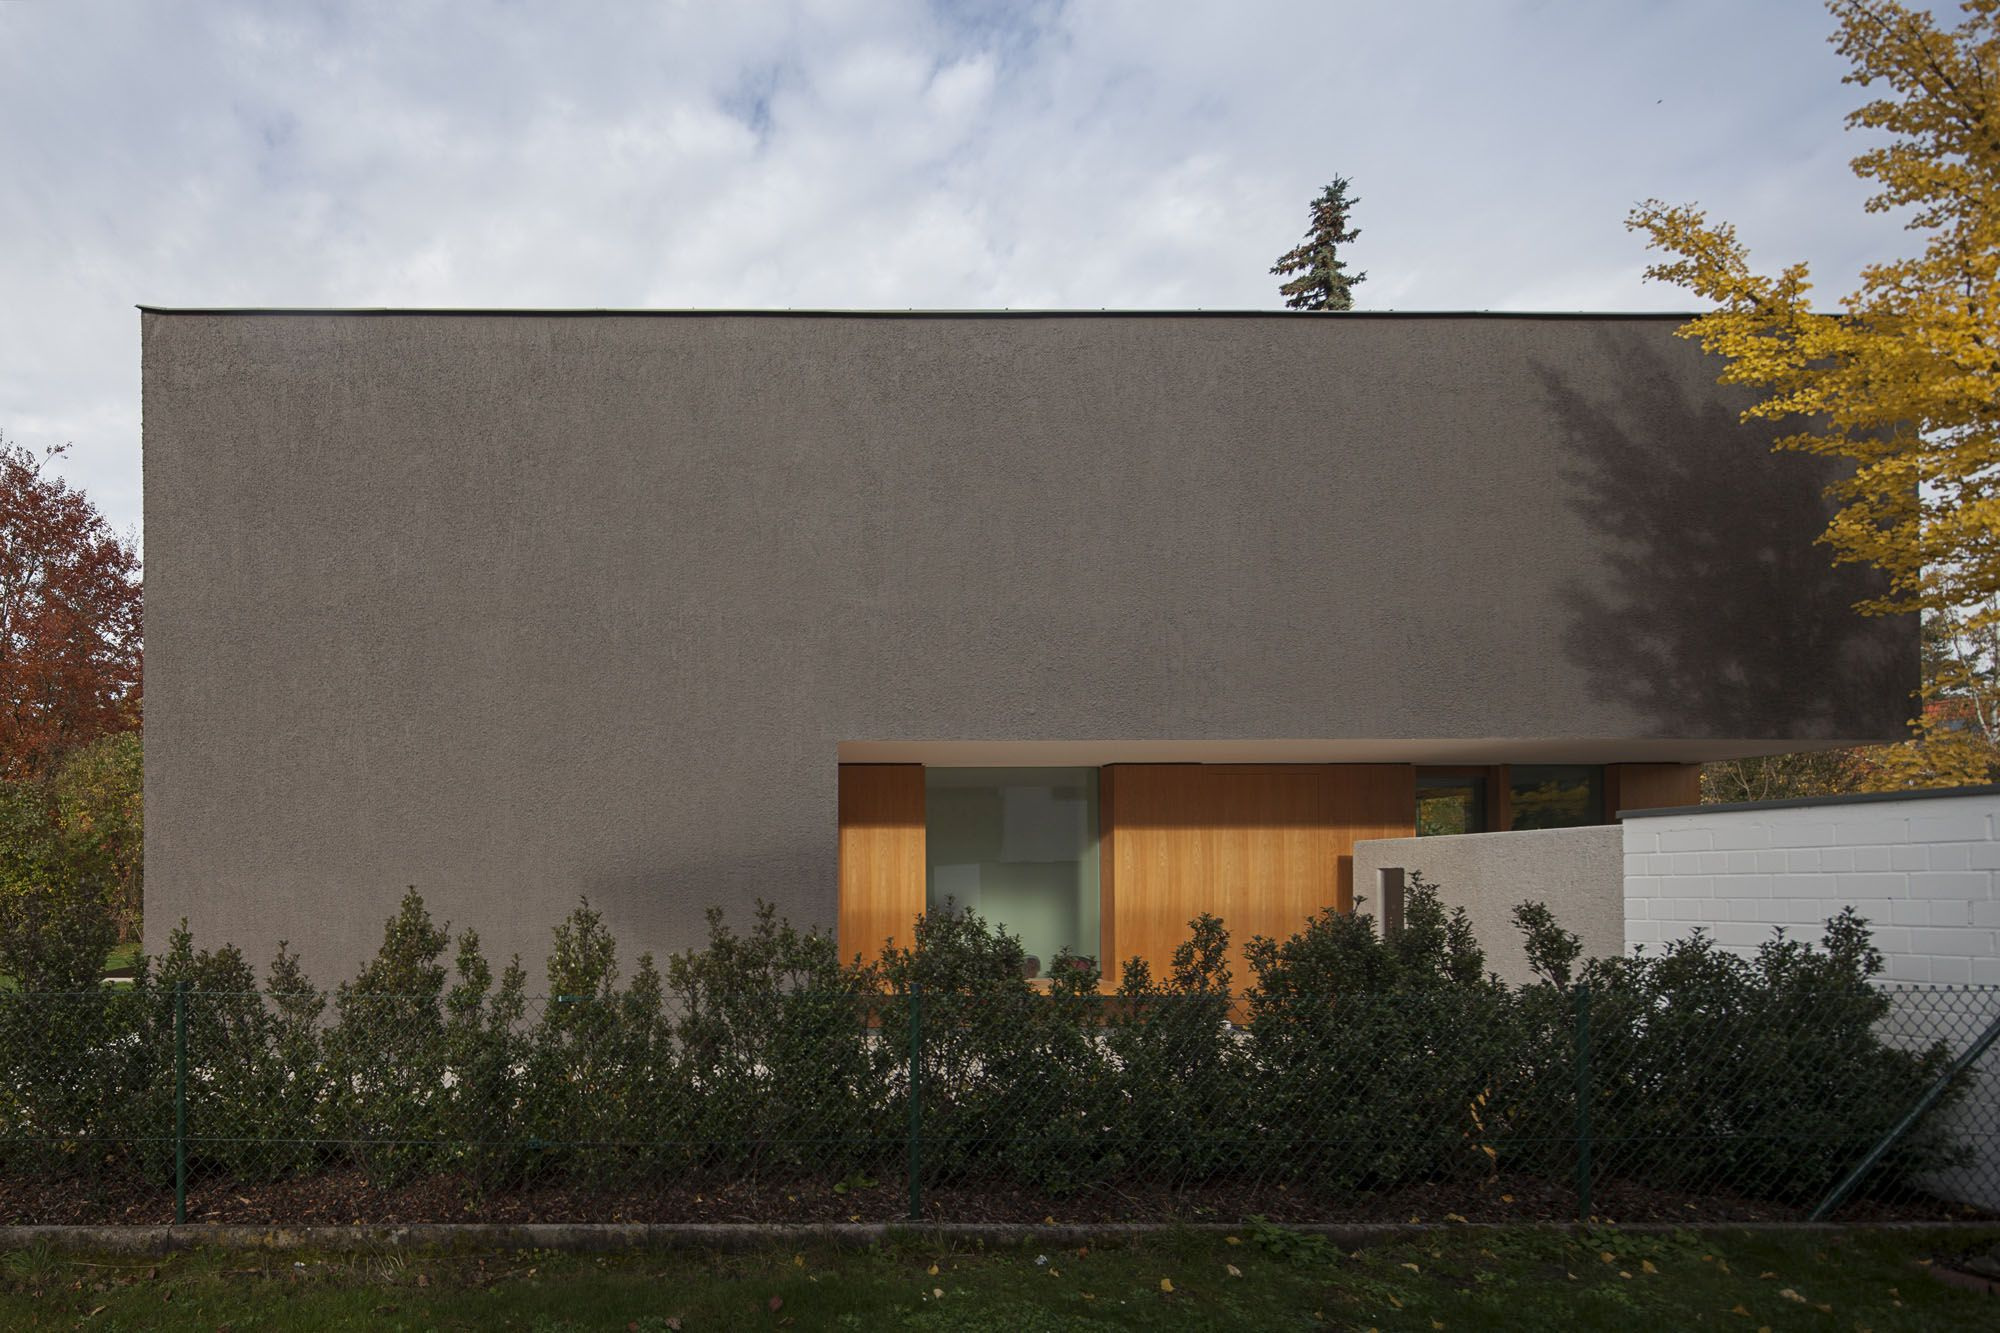 German Minimalistic House Brief Overview. Exterior of the mansion behind the low cultivated bushes